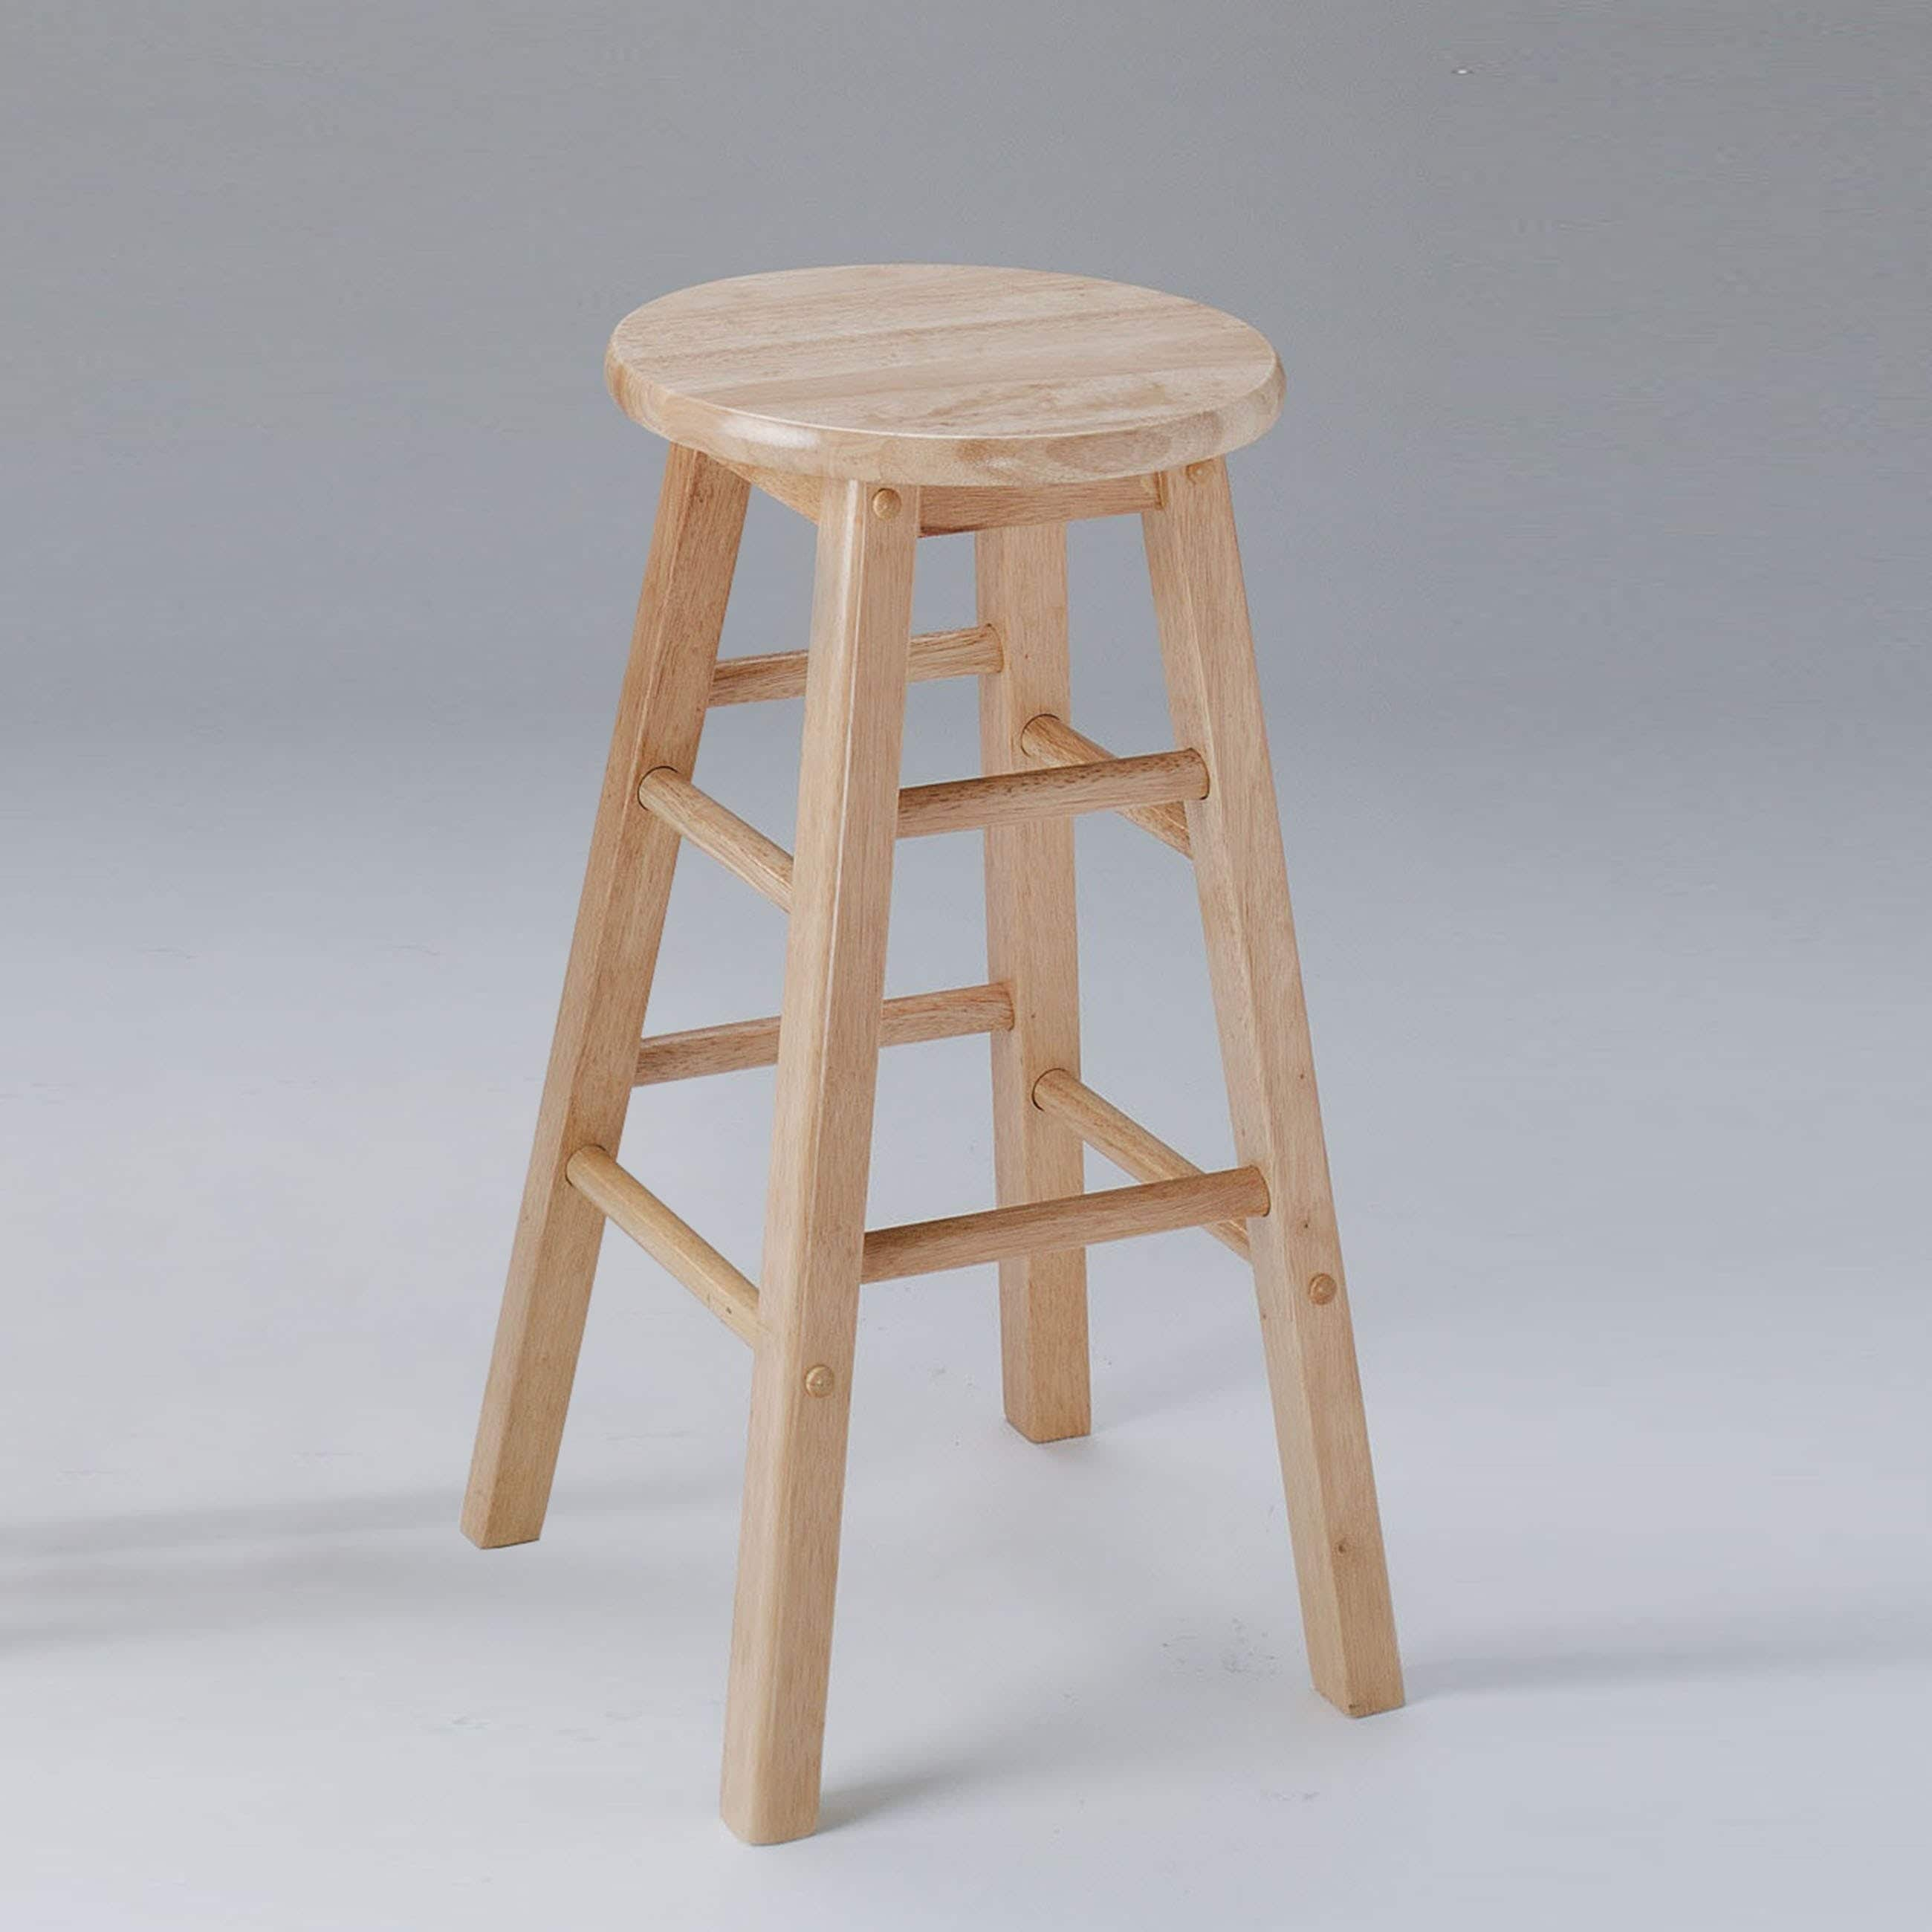 Awe Inspiring Wooden Counter Height Stool With Foot Rails Set Of 2 Natural Brown Pdpeps Interior Chair Design Pdpepsorg